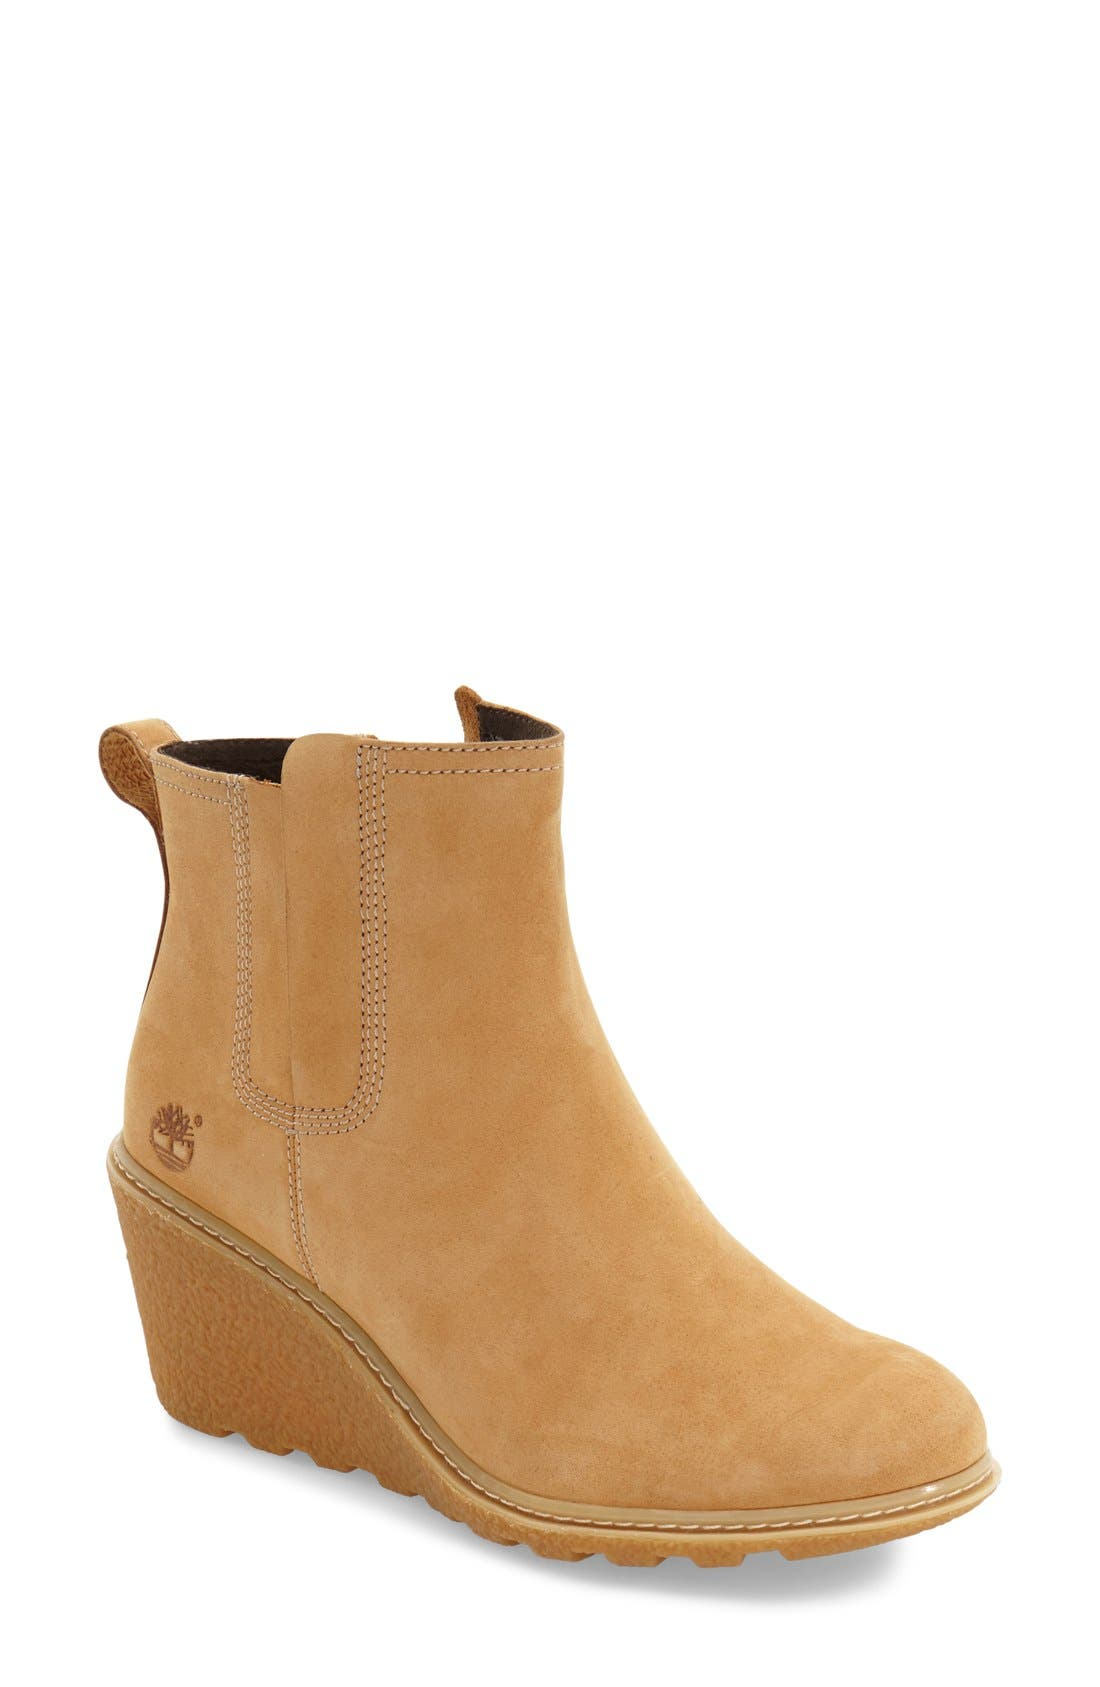 Alternate Image 1 Selected - Timberland 'Amston' Chelsea Wedge Boot (Women)